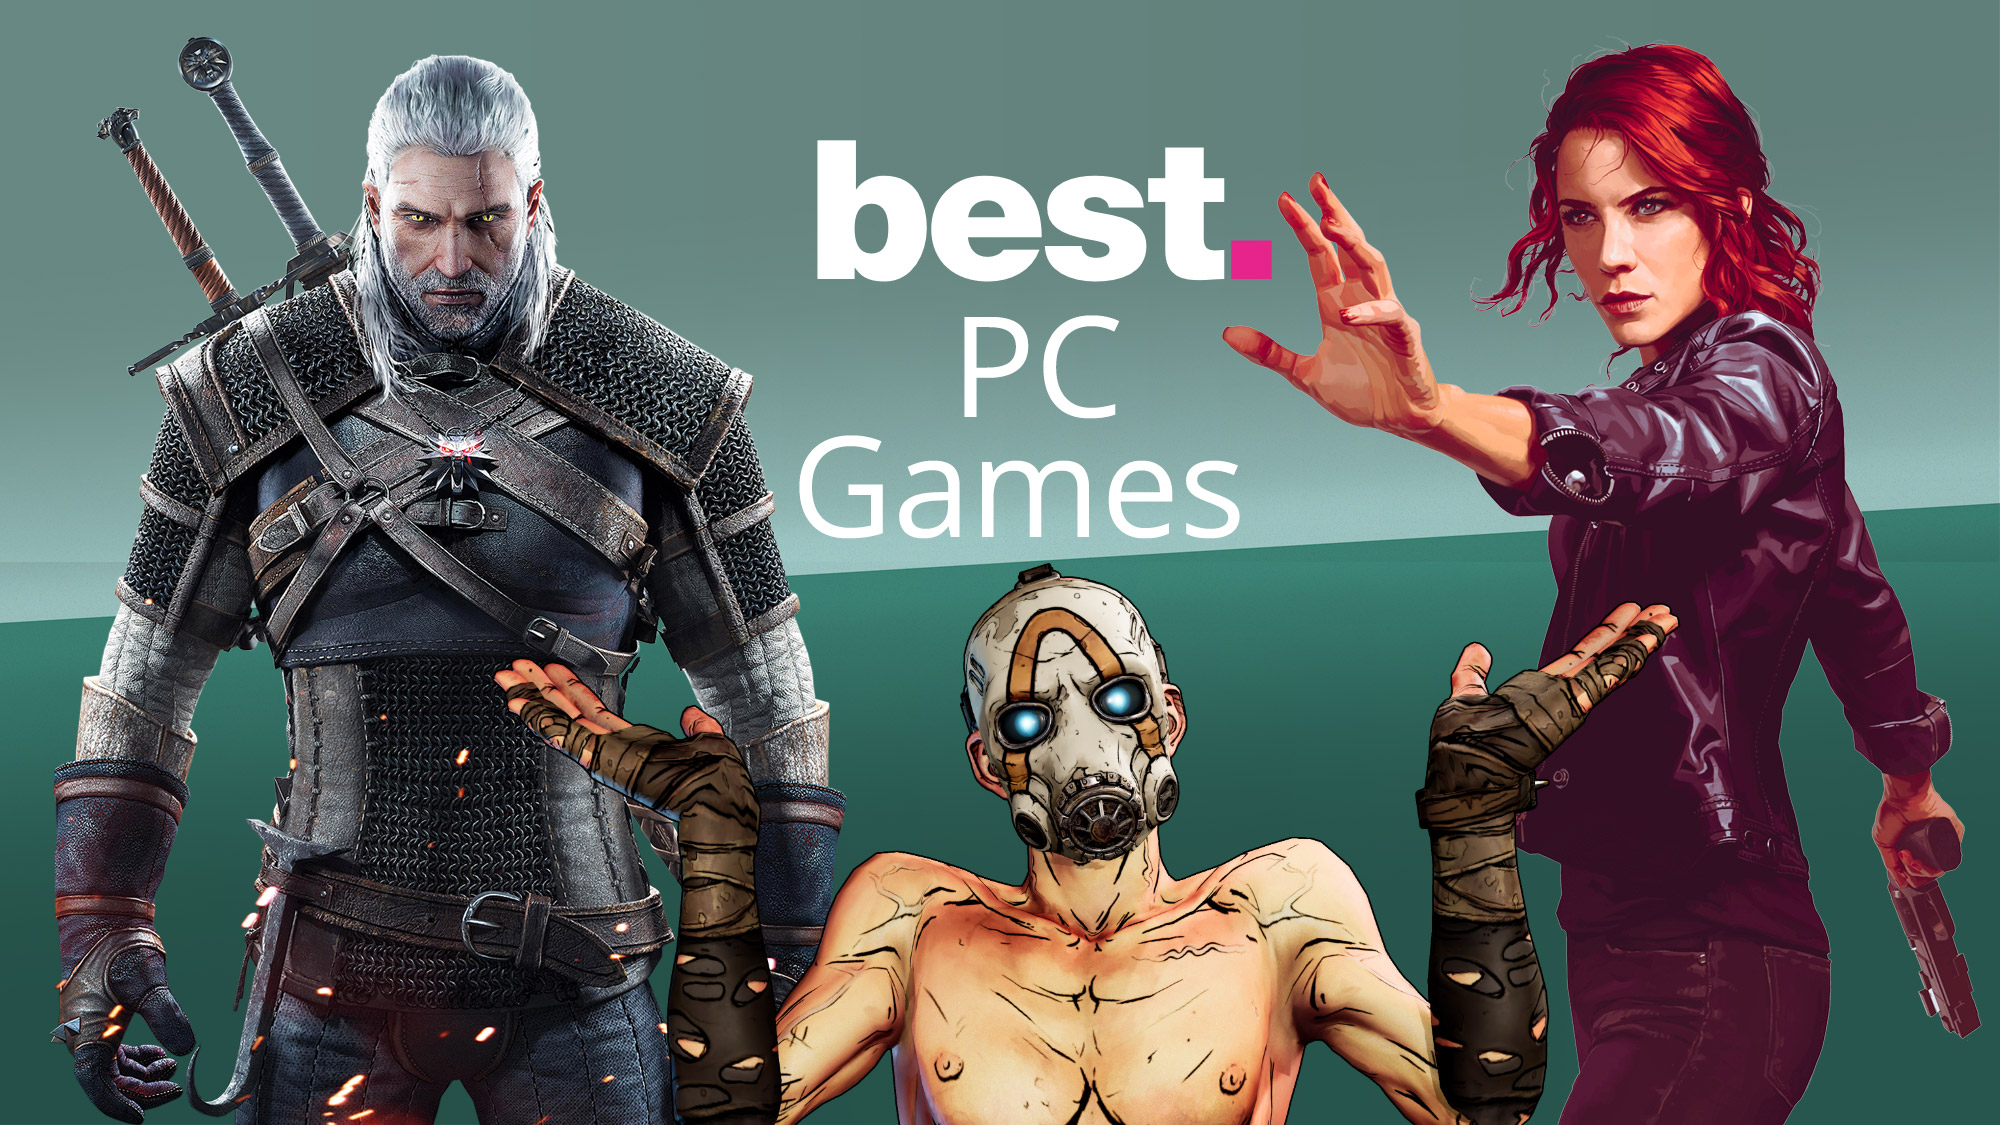 If you have a desire to play games but dont know which one to play,  I am here to RECOMMEND 5 games